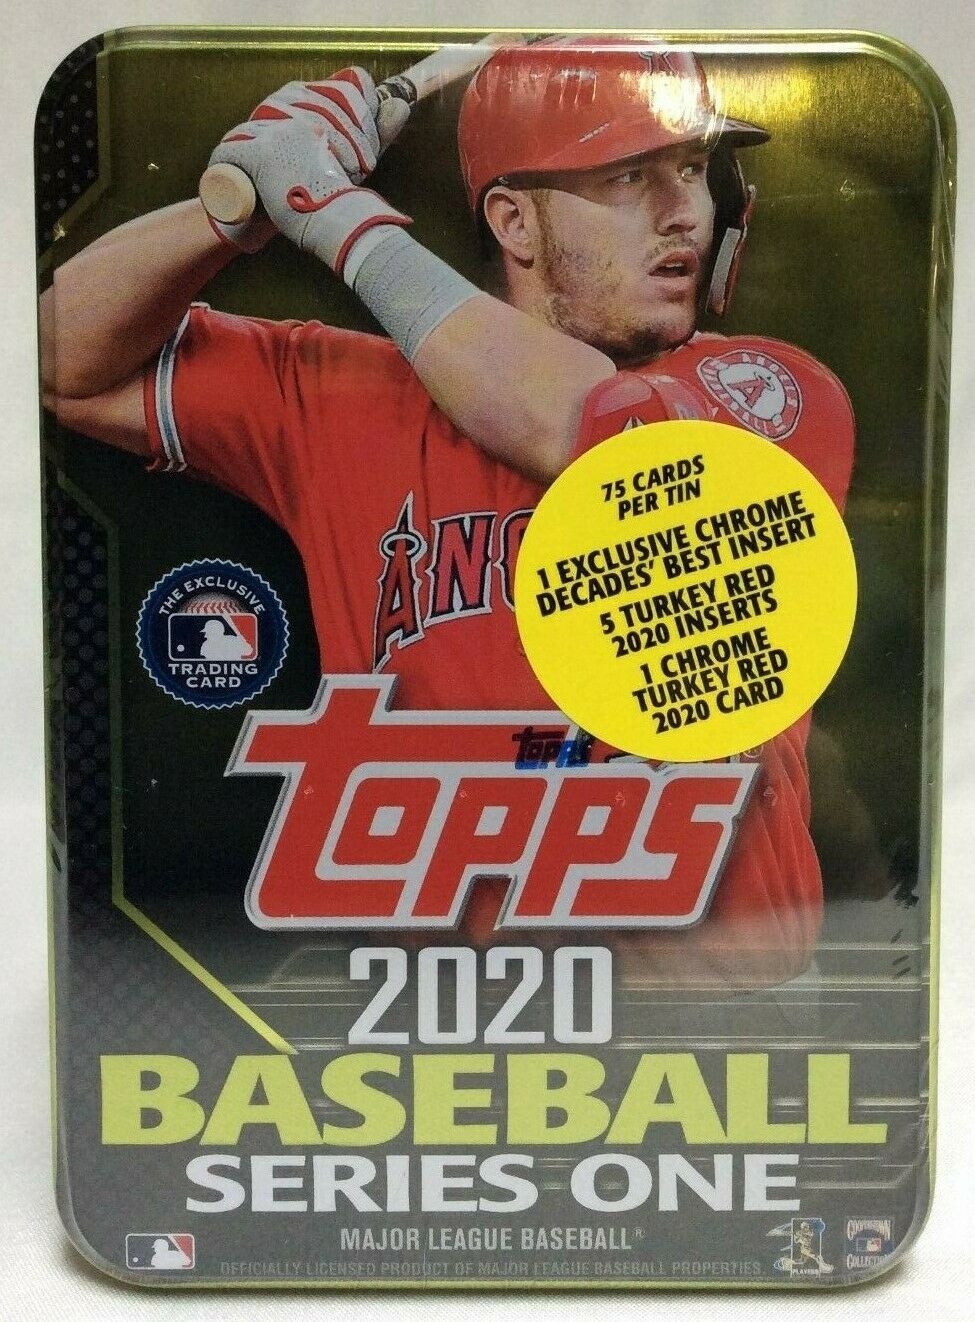 2020 Topps Series 1 Collectible Tin Box Sold Out Walmart Mike Trout L A Angels Ideas Of Mike Trout Mike In 2020 Mike Trout Baseball Series Baseball Cards For Sale